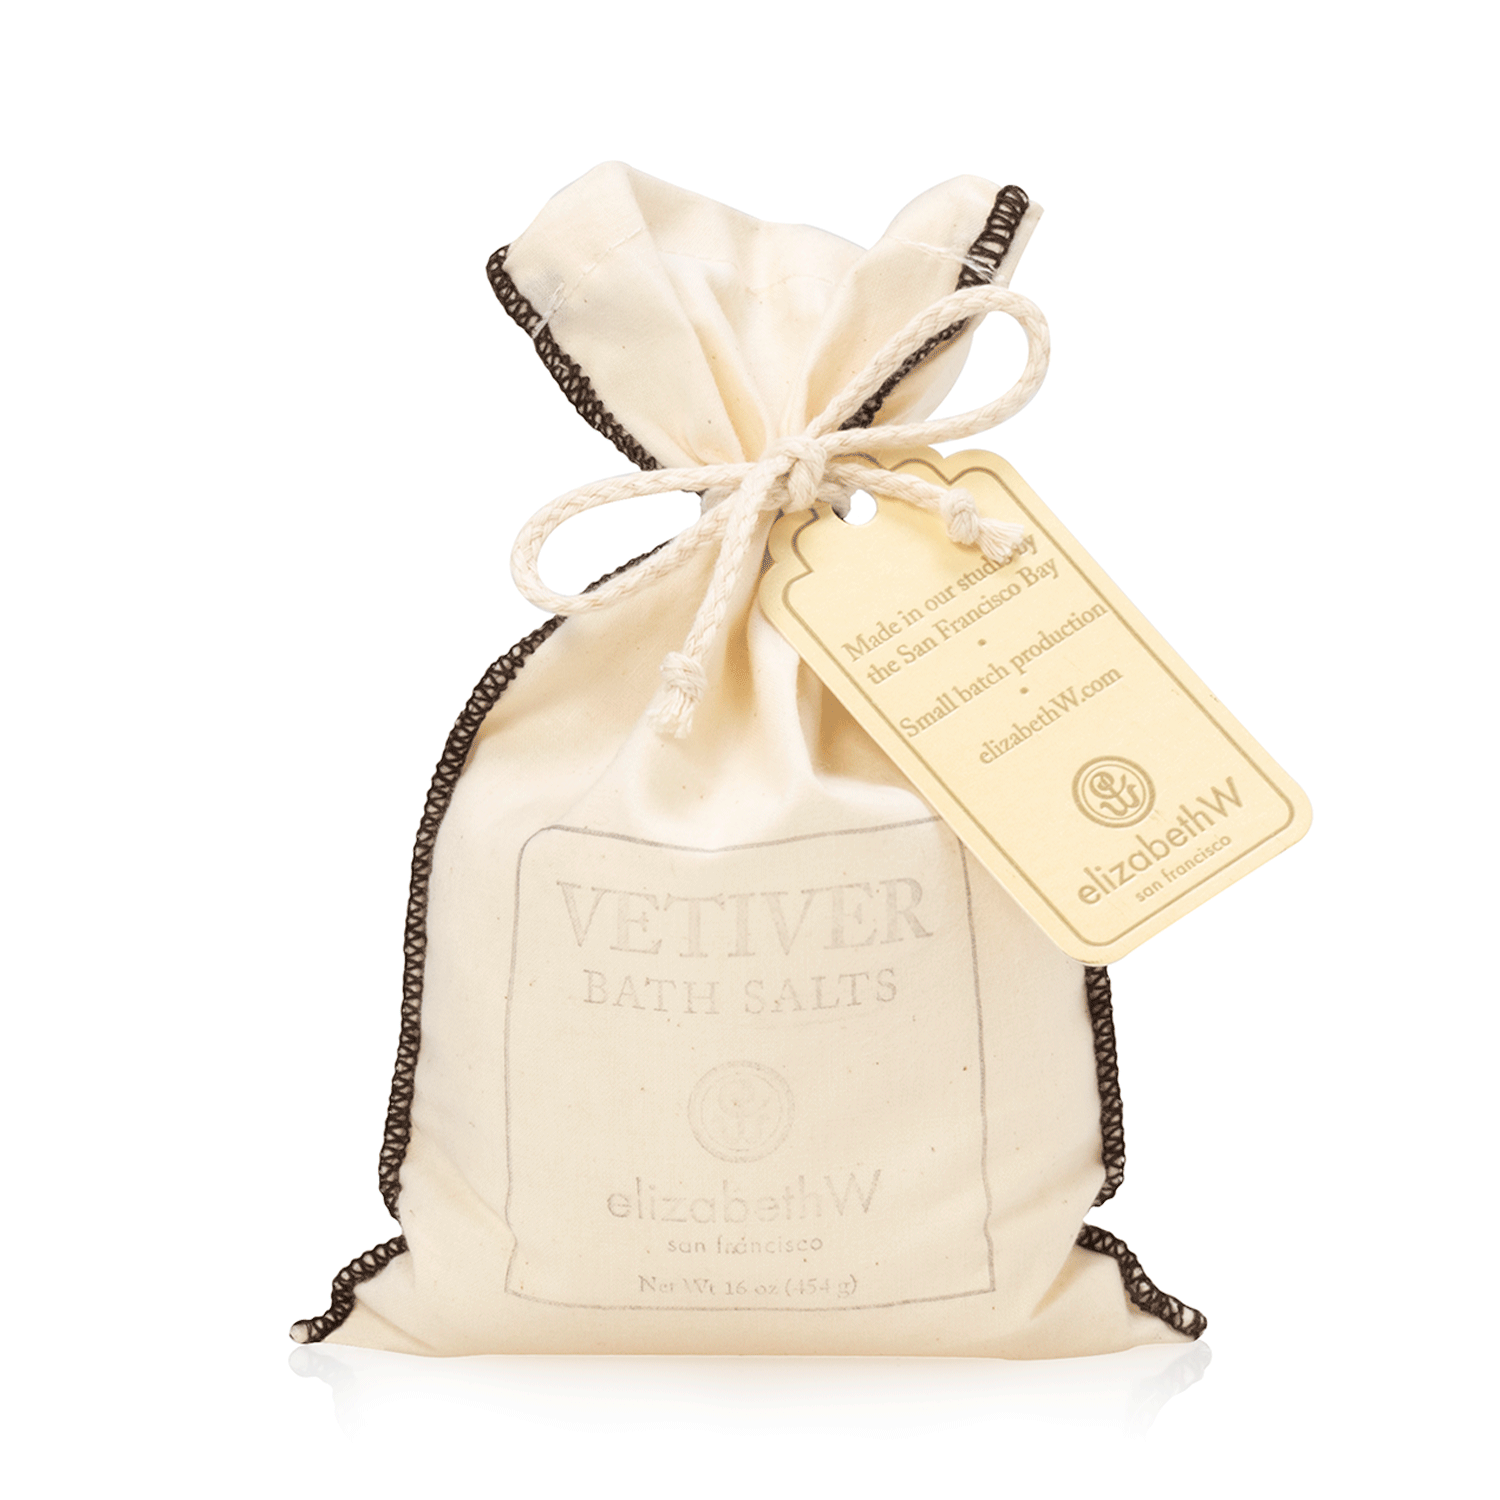 Vetiver Bath Salts in Bag